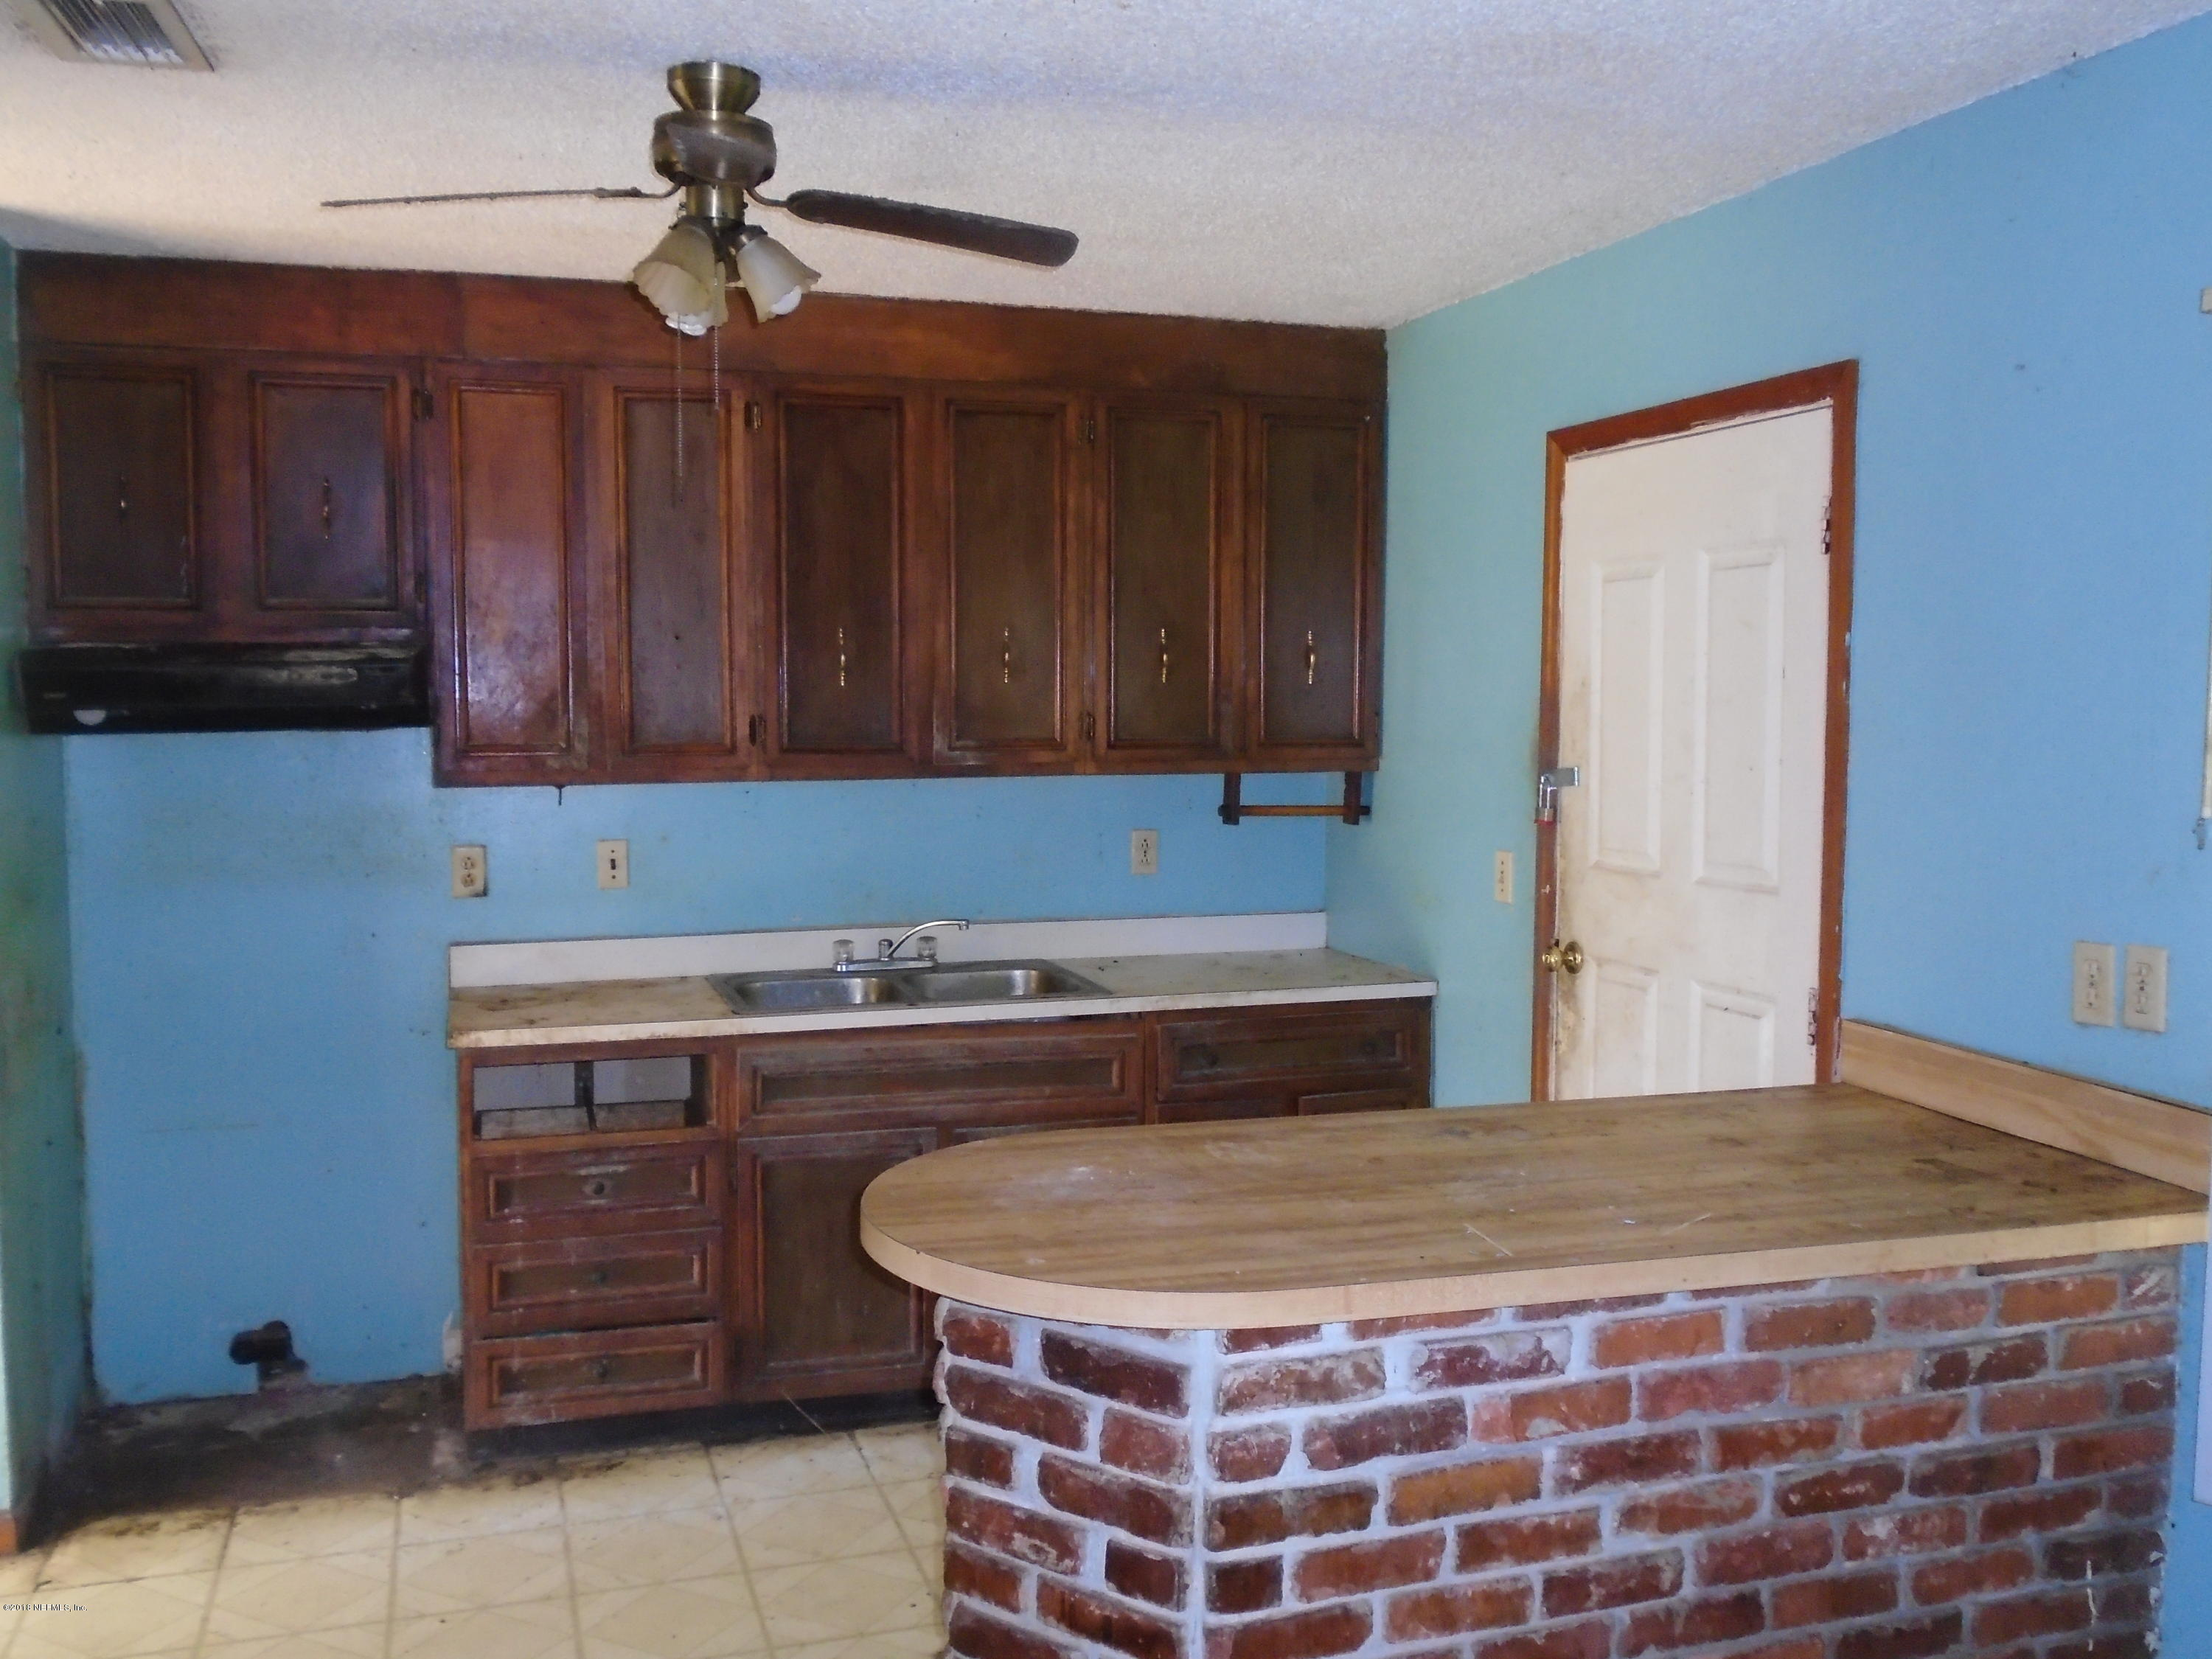 267 HARBOR, PALATKA, FLORIDA 32177, 3 Bedrooms Bedrooms, ,1 BathroomBathrooms,Residential - single family,For sale,HARBOR,952826